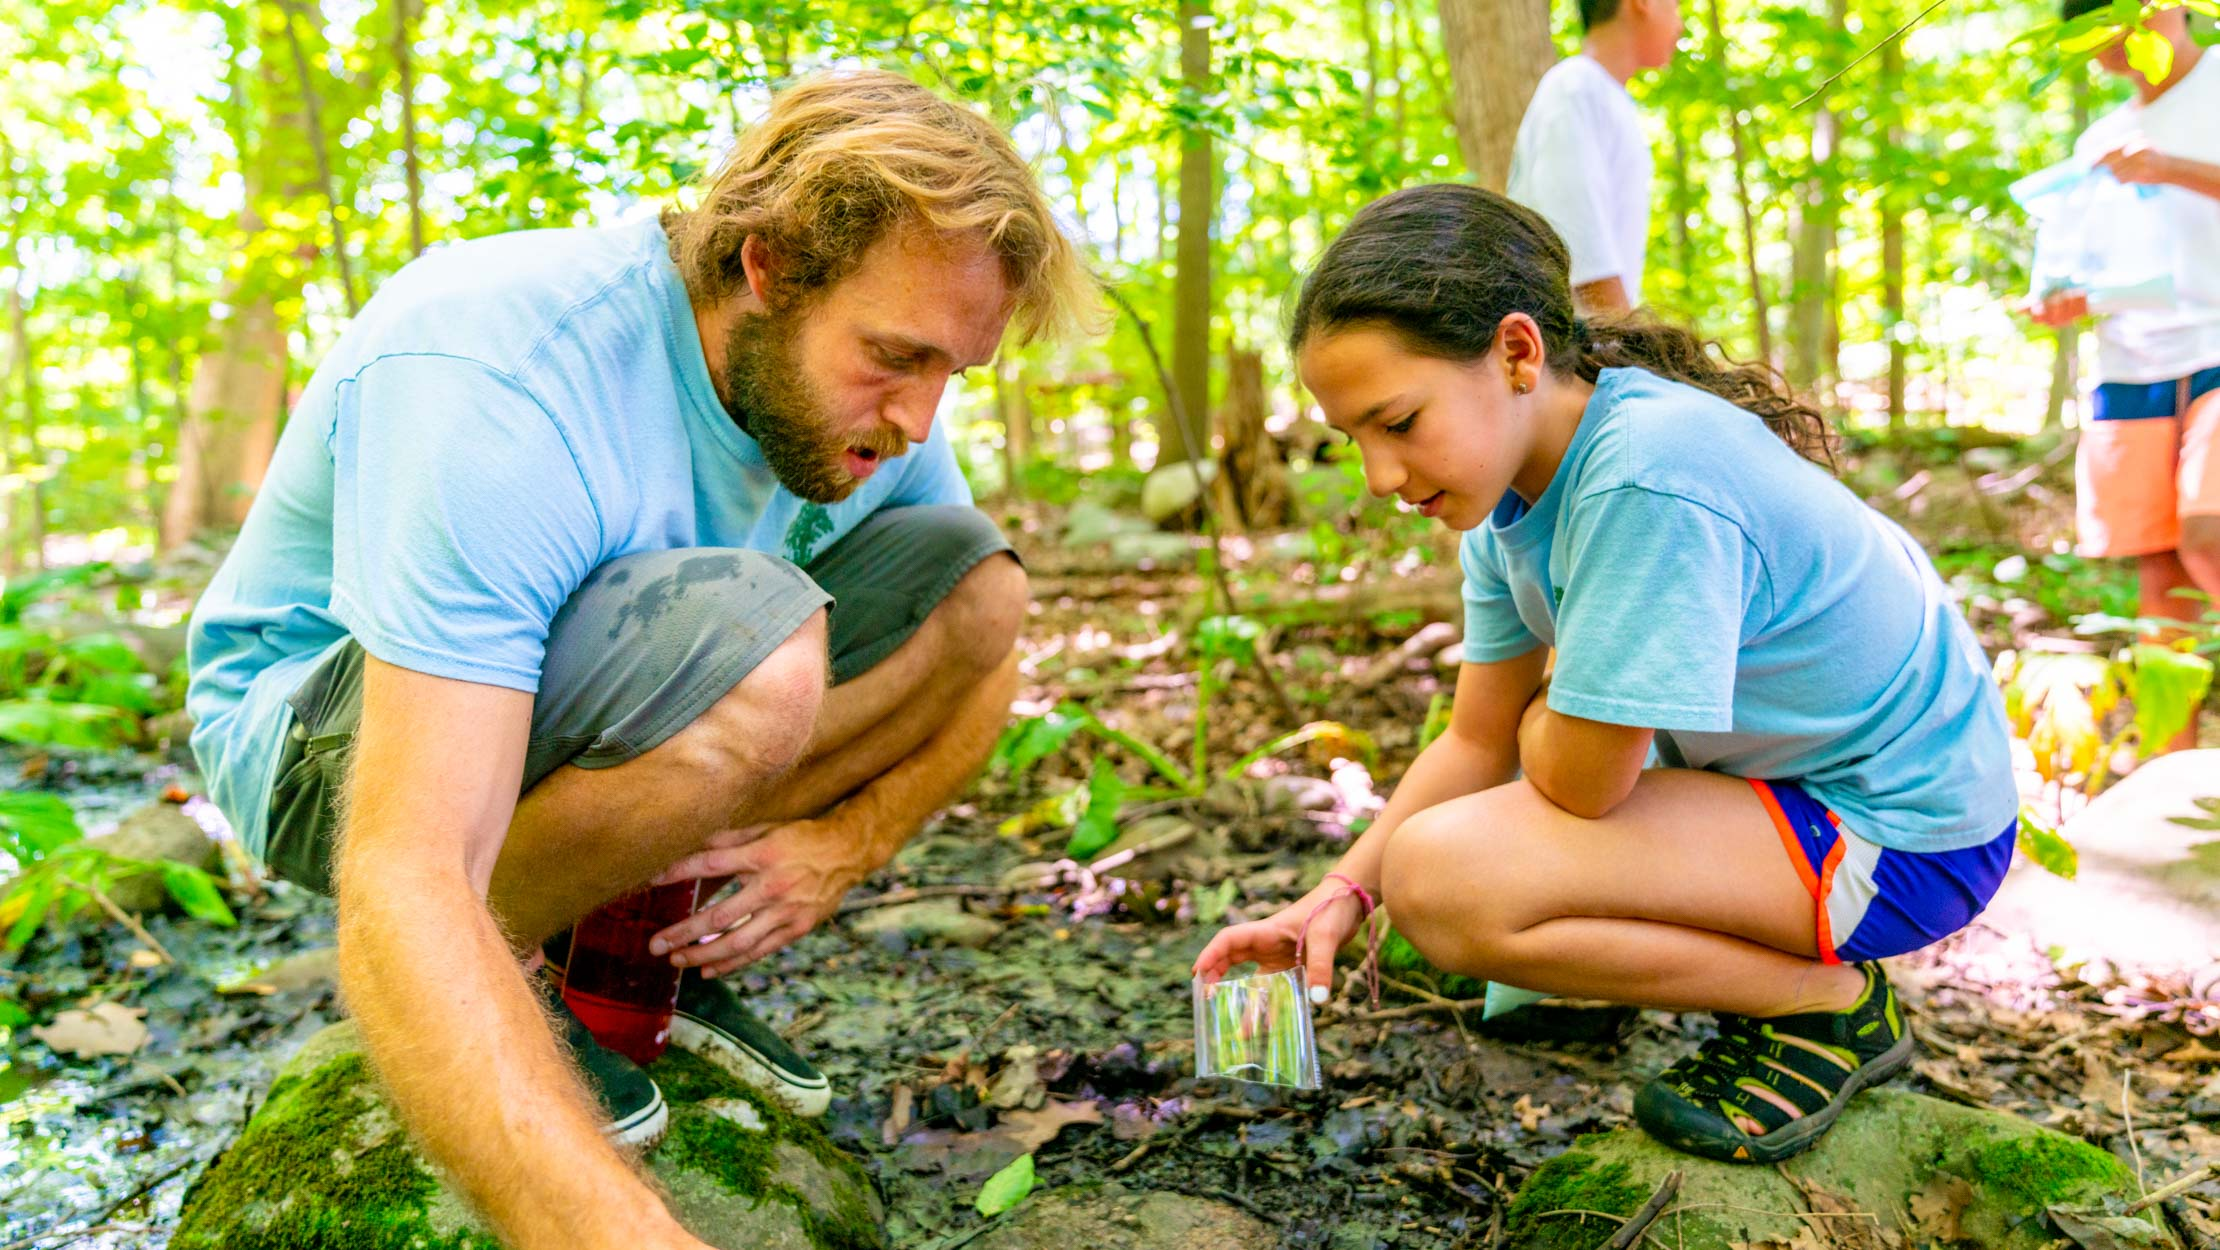 Camper and counselor examining the dirt